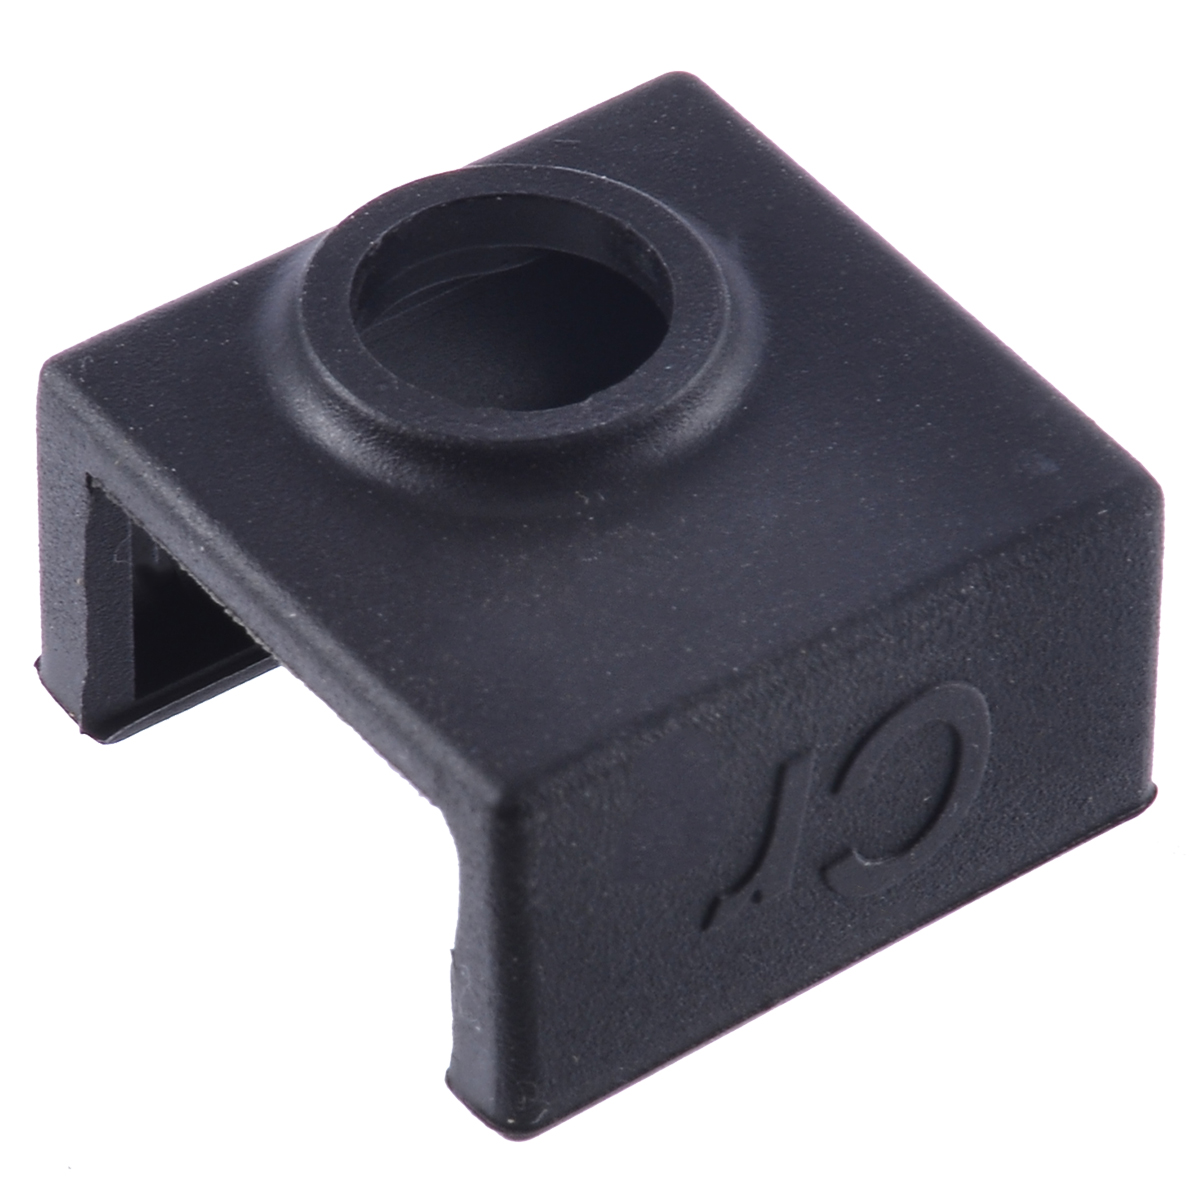 3pcs/Lots 3D Printer Heater Block Silicone Cover For <font><b>CR</b></font>-10S 10S 10S5 <font><b>10S4</b></font> 3D Printer Parts Heating Block Silicone Cover image